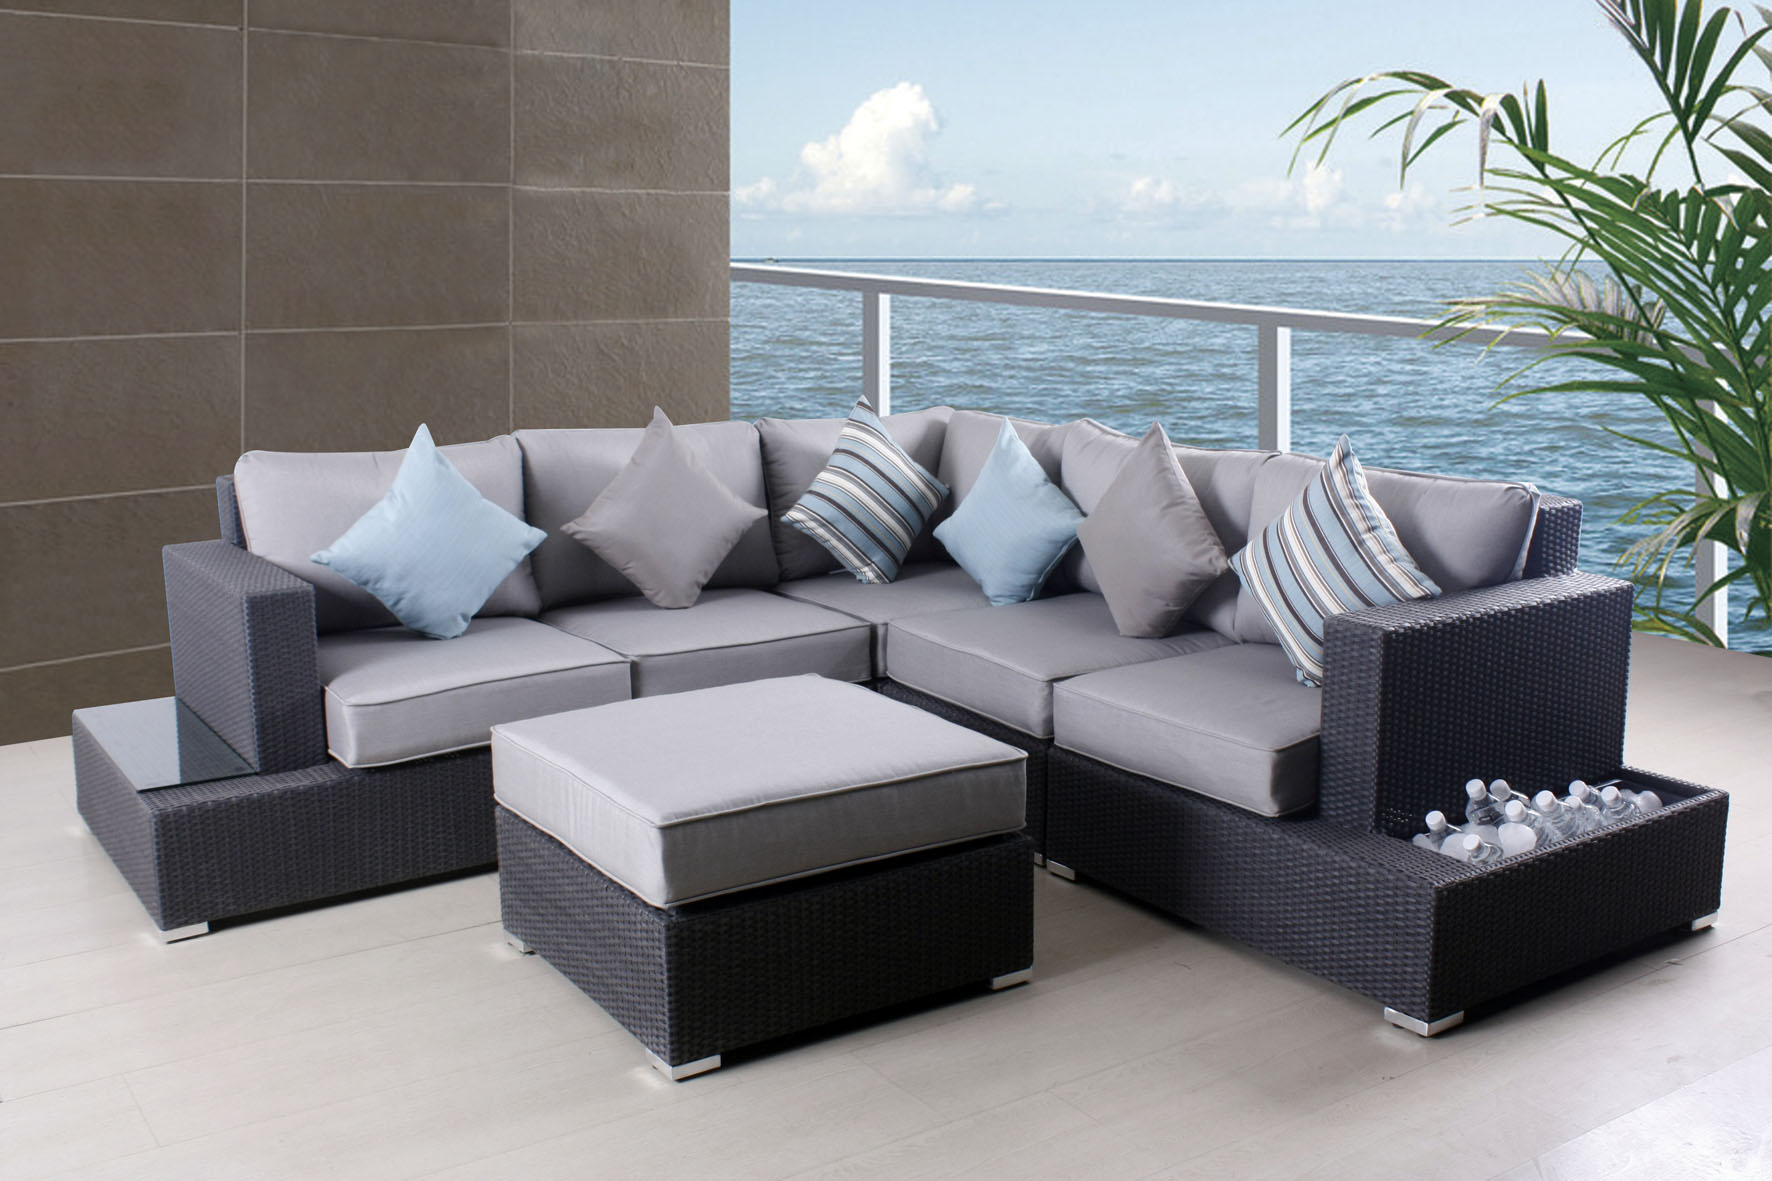 Easy tips for thomasville outdoor furniture purchase for Outdoor living patio furniture